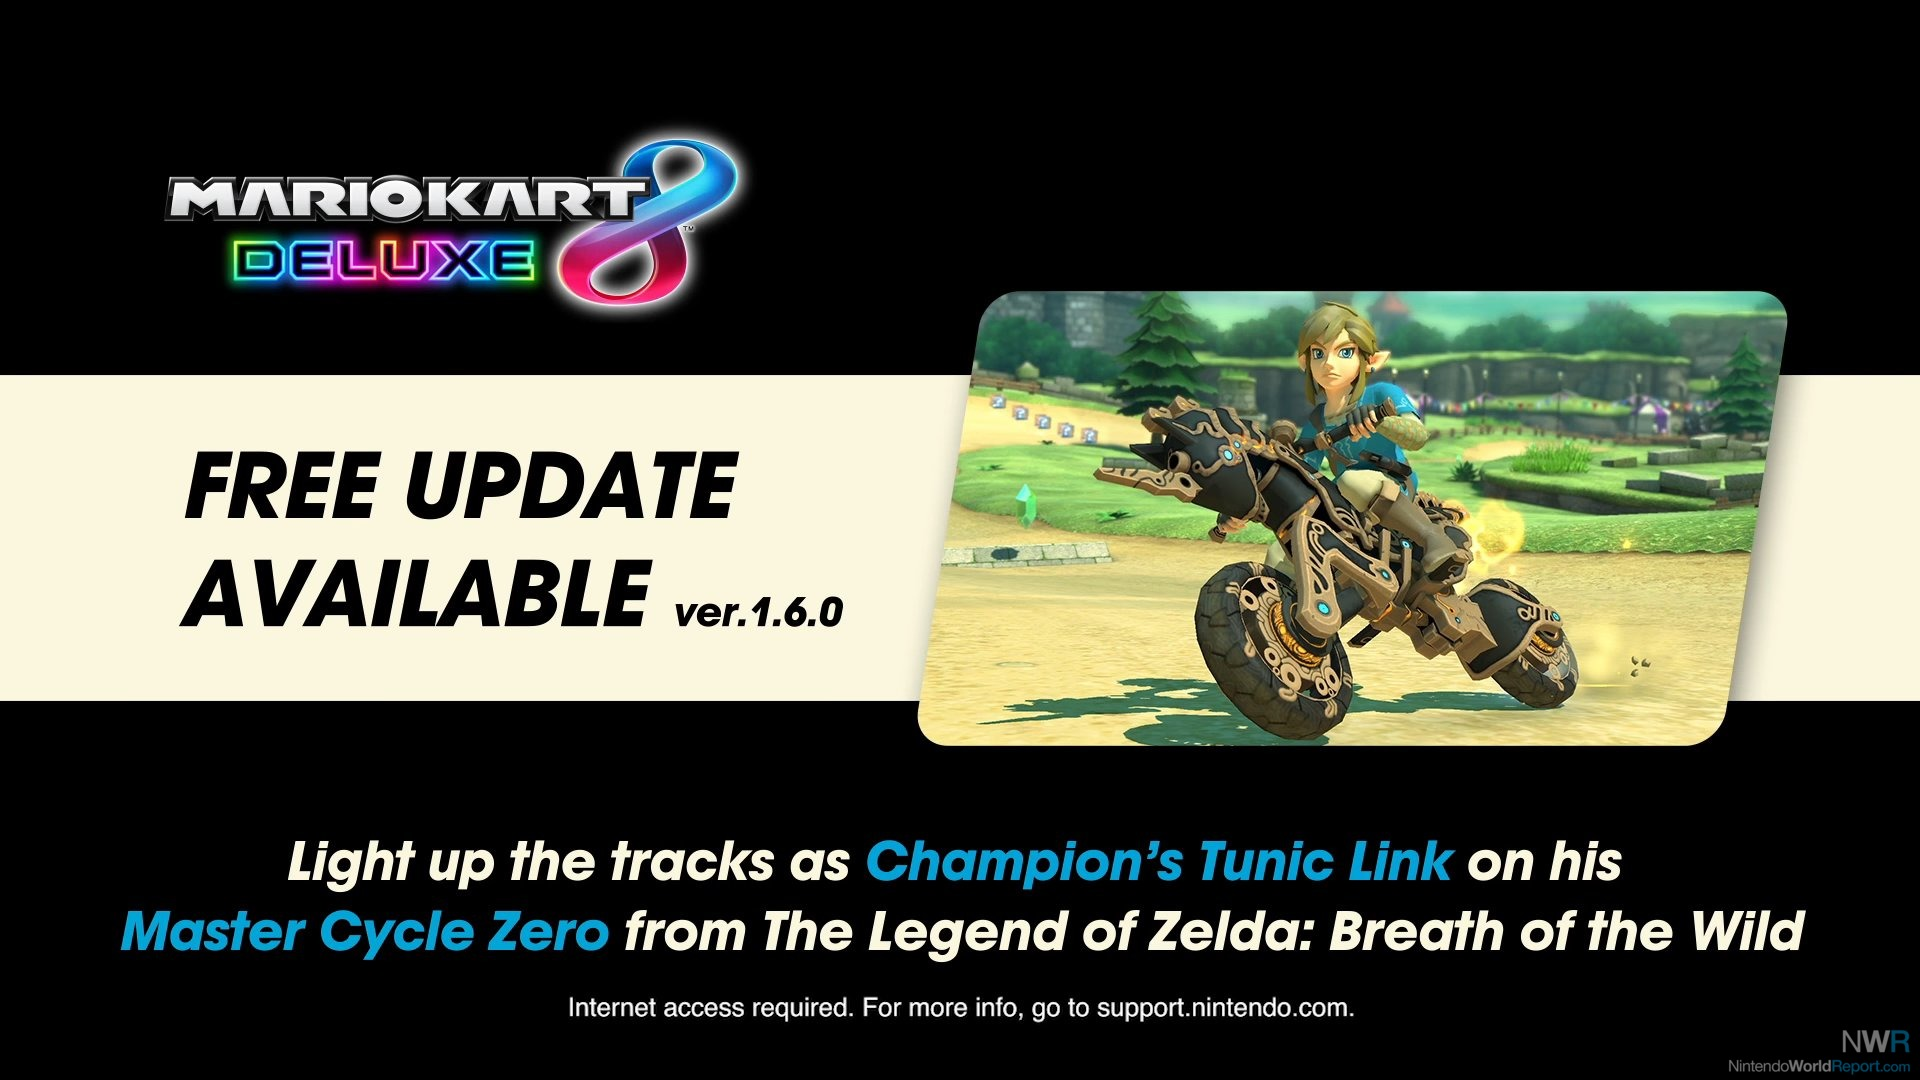 Mario Kart 8 Adds Breath of the Wild Link, Master Cycle Zero